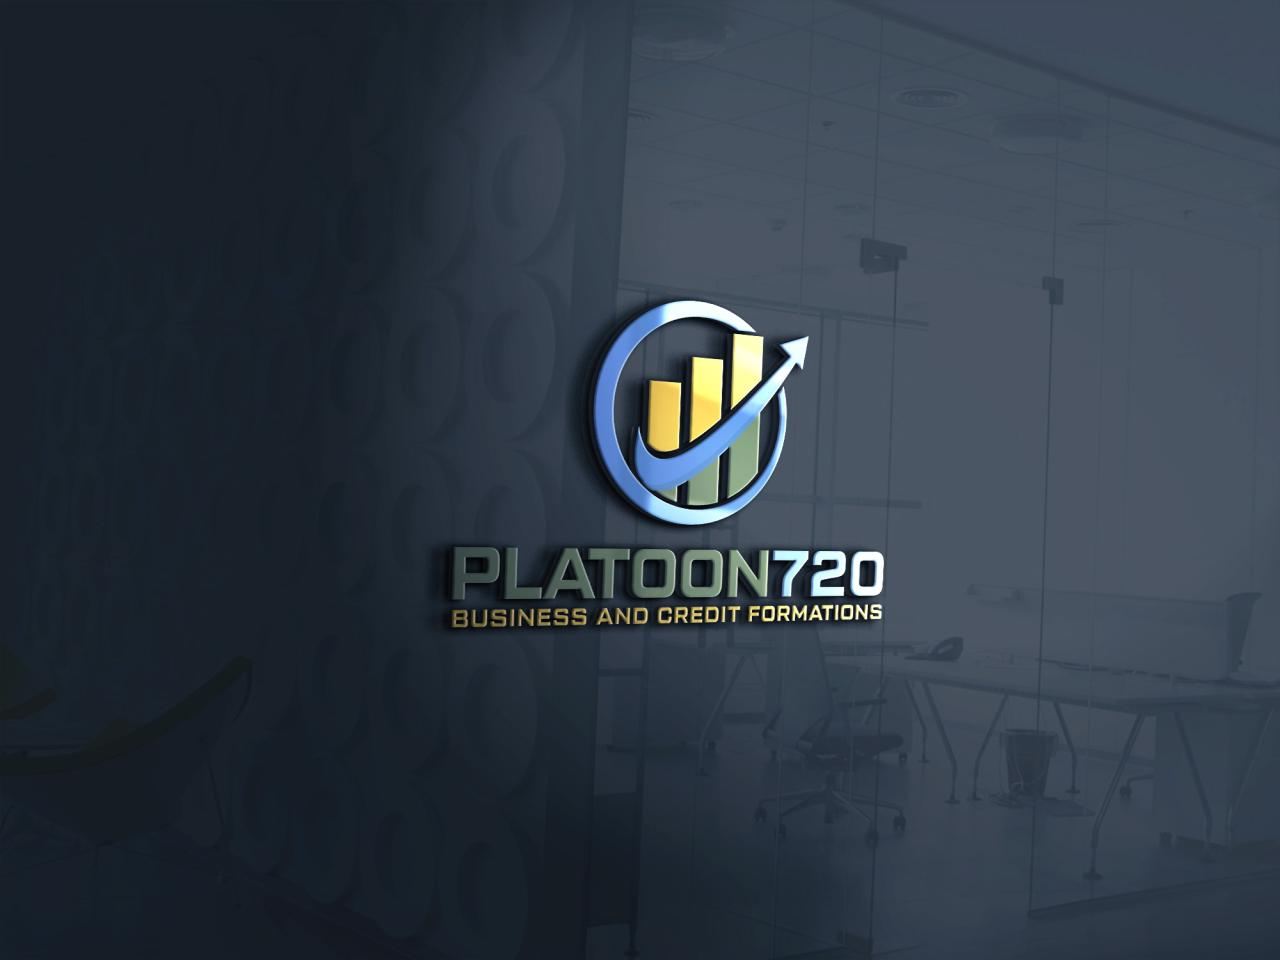 About Platoon 720